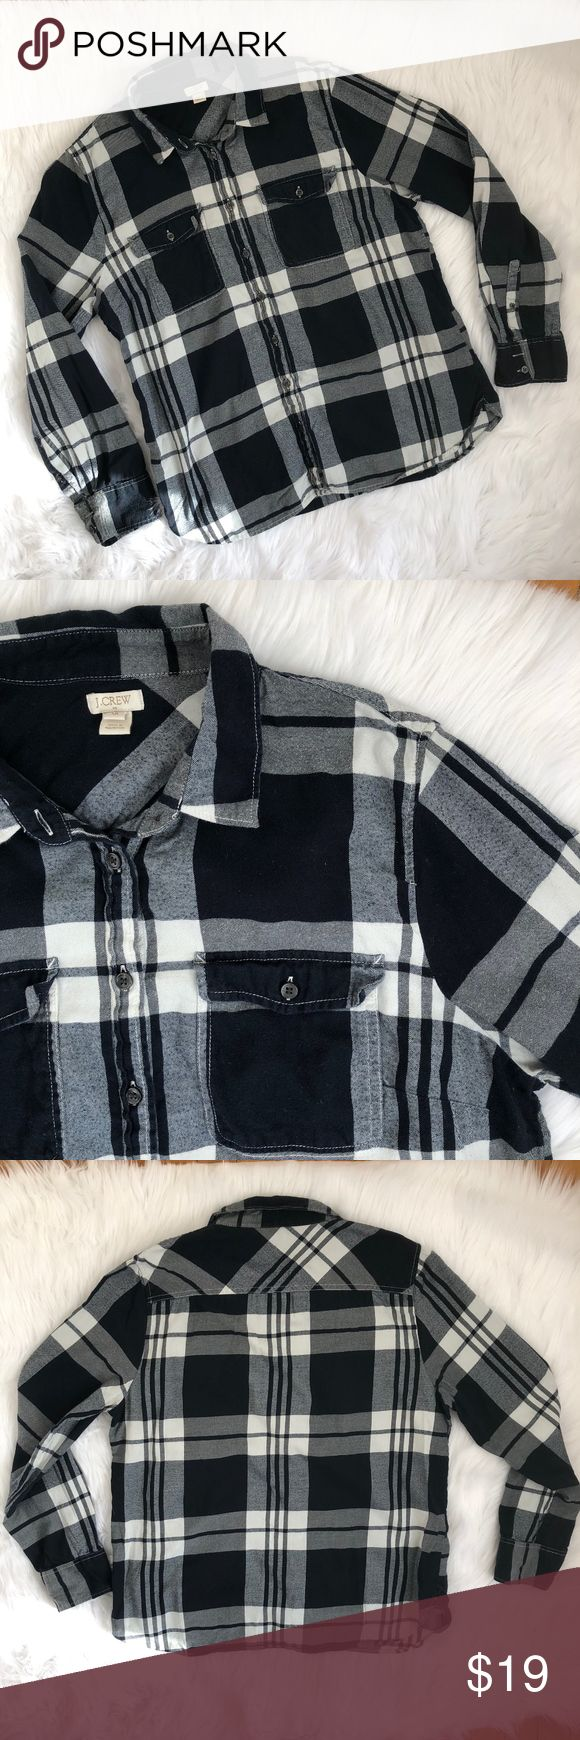 "J. Crew Factory Plaid Flannel Shirt {JI2} Black, white, and gray plaid flannel button down shirt.  Very versatile--wear buttoned up, open, or tied around your waist!  Measurements laying flat Chest: 22"" Length: 26"" Sleeve: 25""  Condition—Very good J. Crew Factory Tops Button Down Shirts"